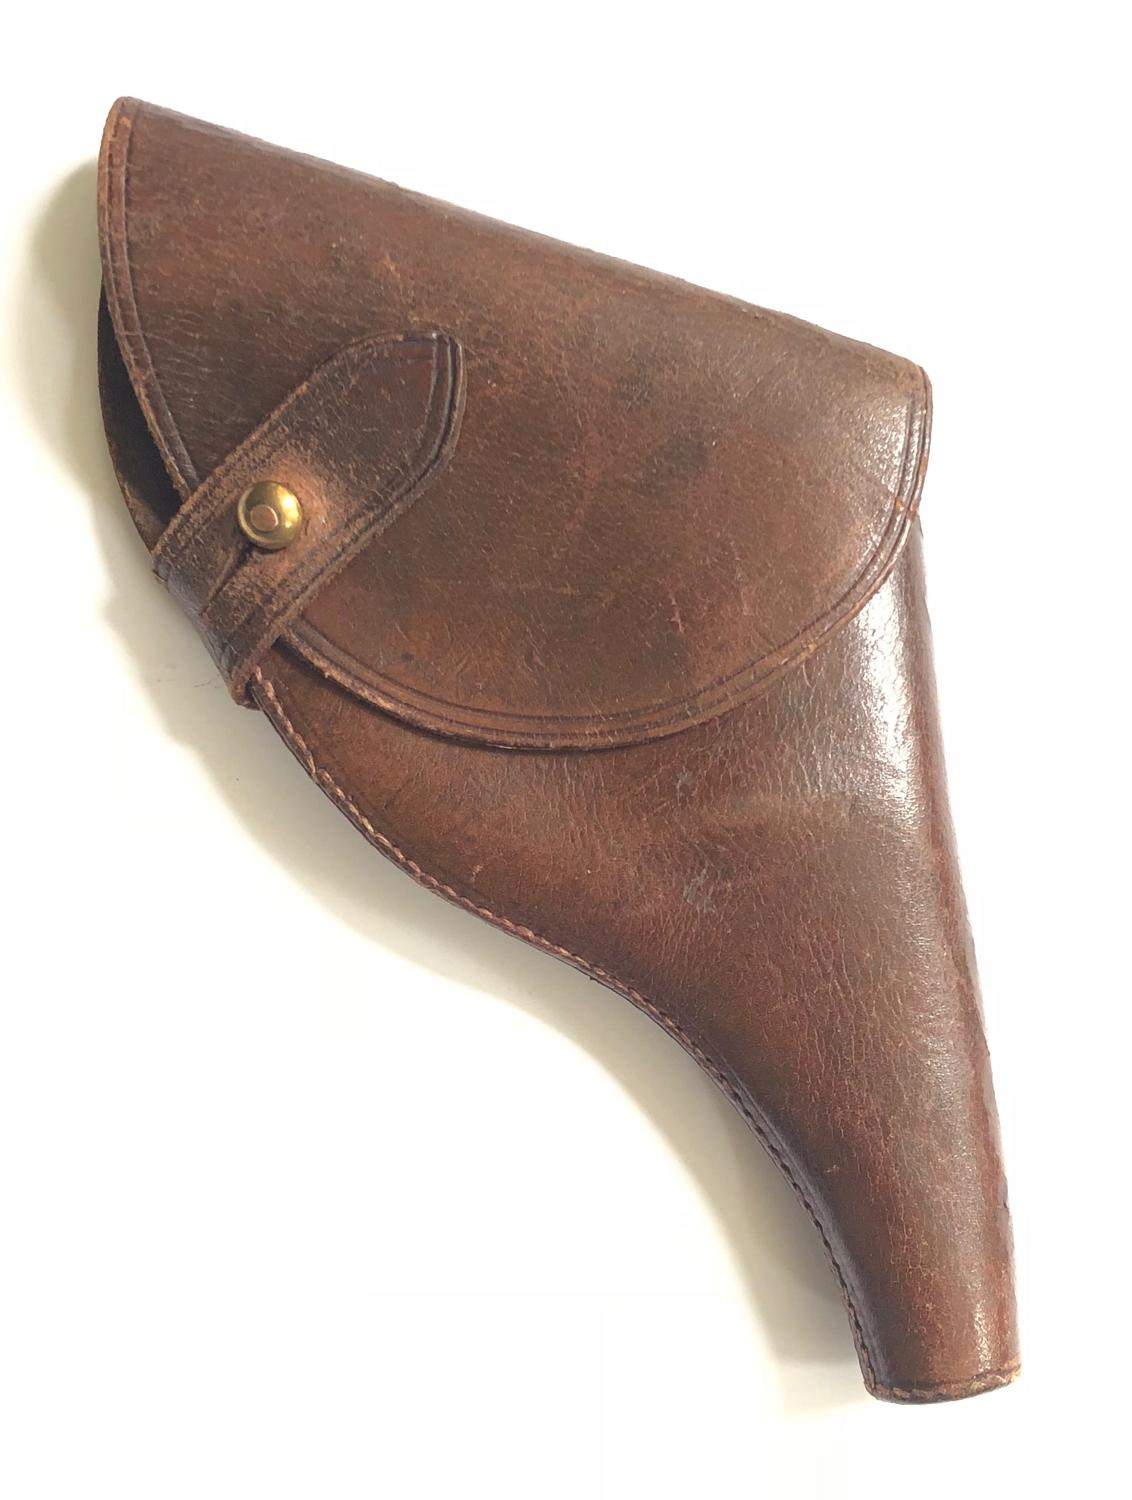 WW1 Unusual British Small Military Pattern Officer's Holster.